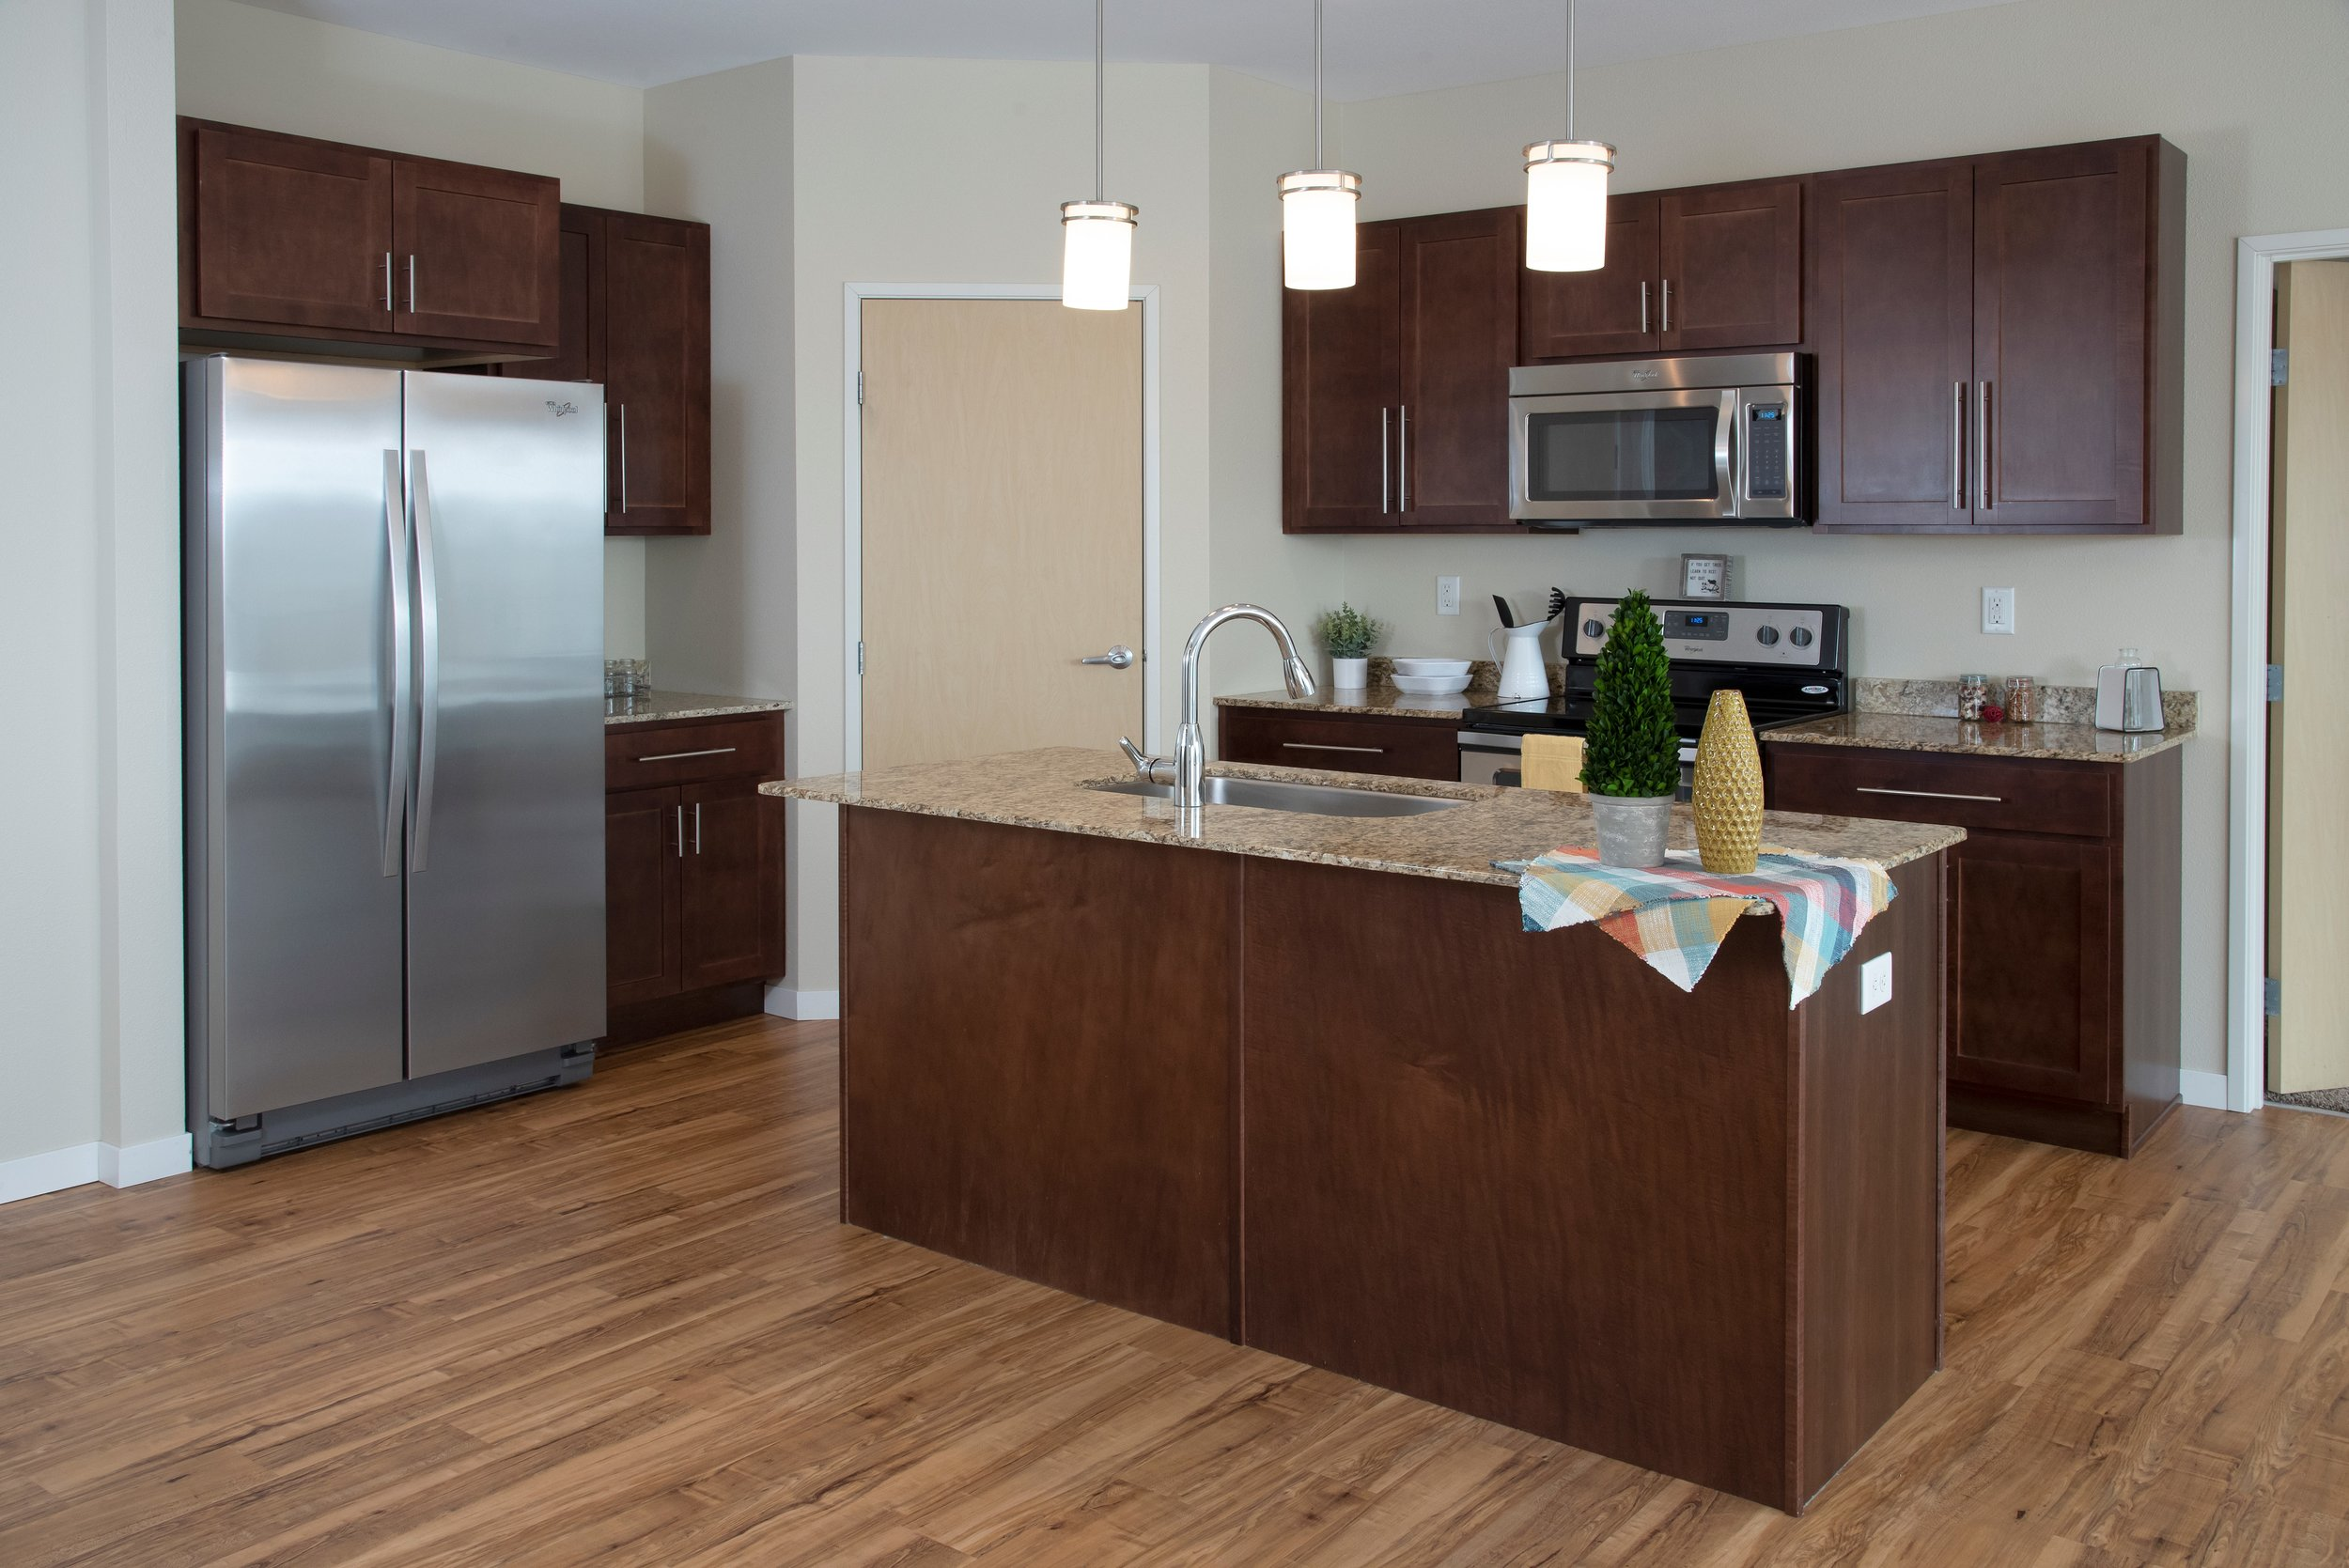 Kitchens Include Stainless Steel Appliances, Granite Counter Tops & Custom Cabinetry